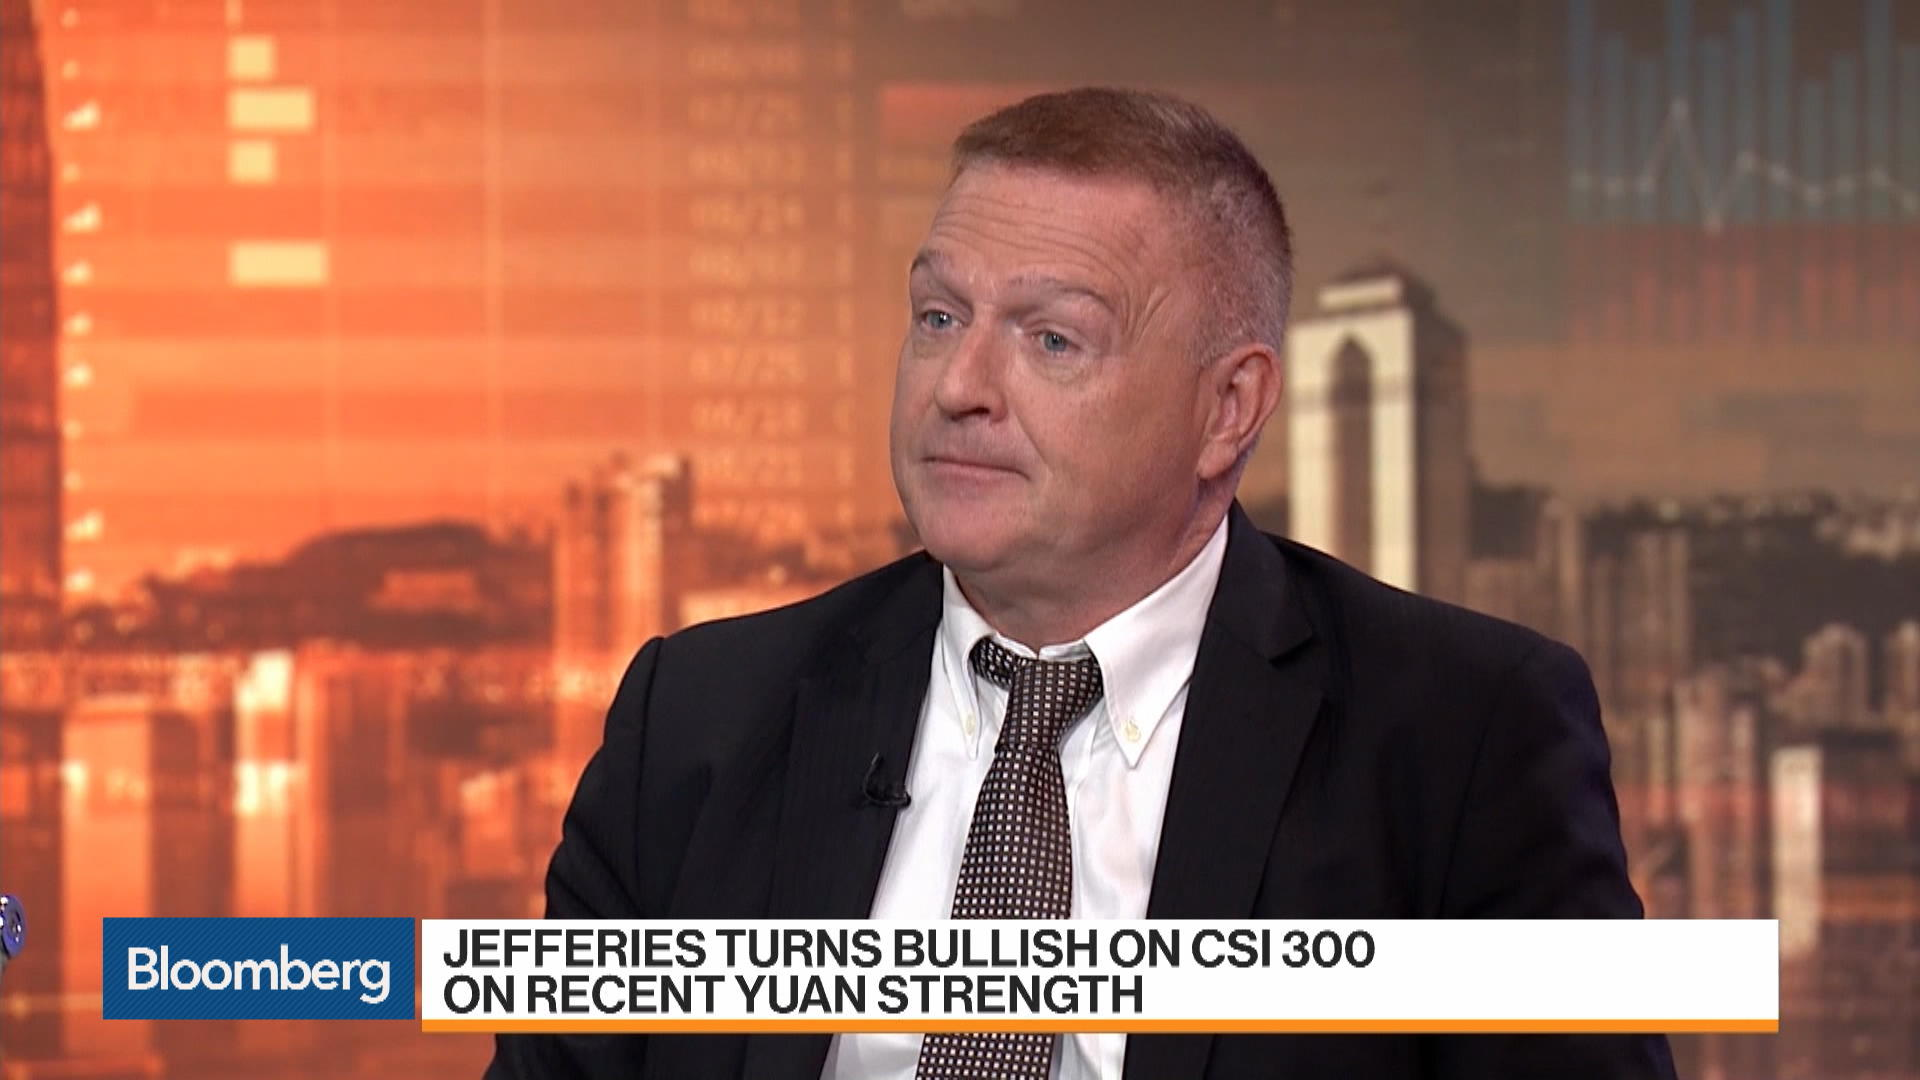 Sean Darby, Strategist at Jefferies, on Chinese Stocks